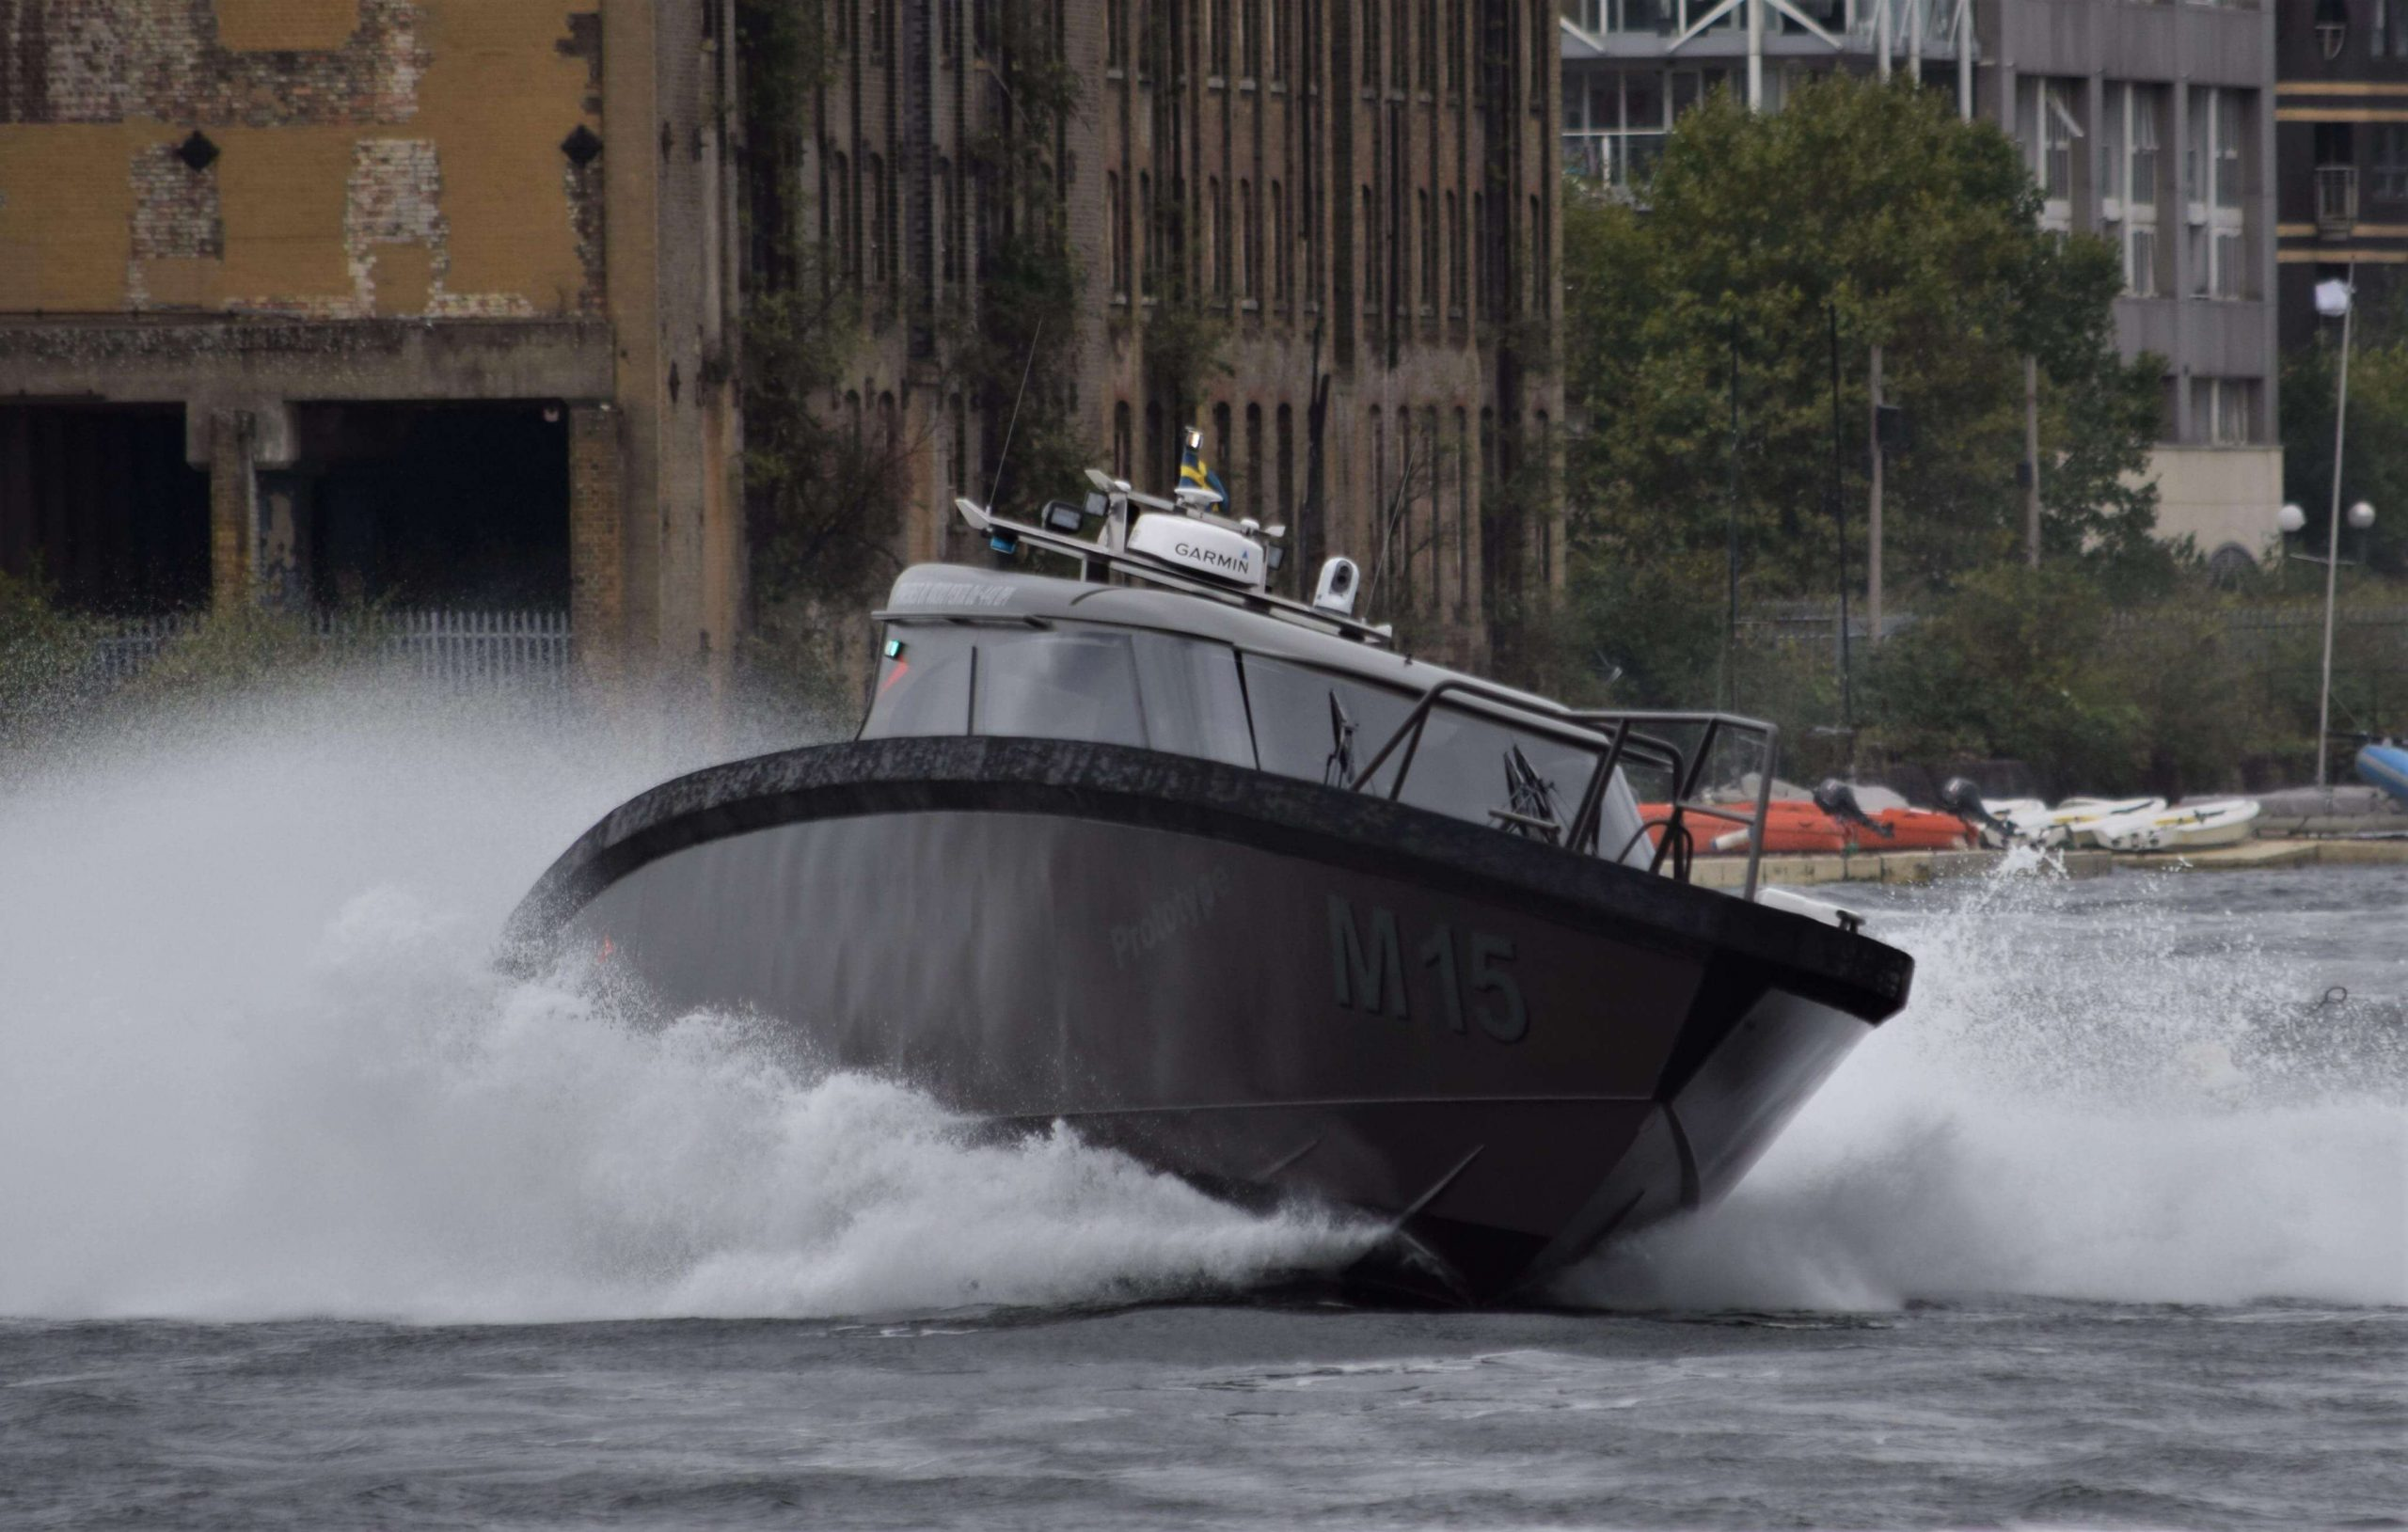 m15 vp2 boat at speed